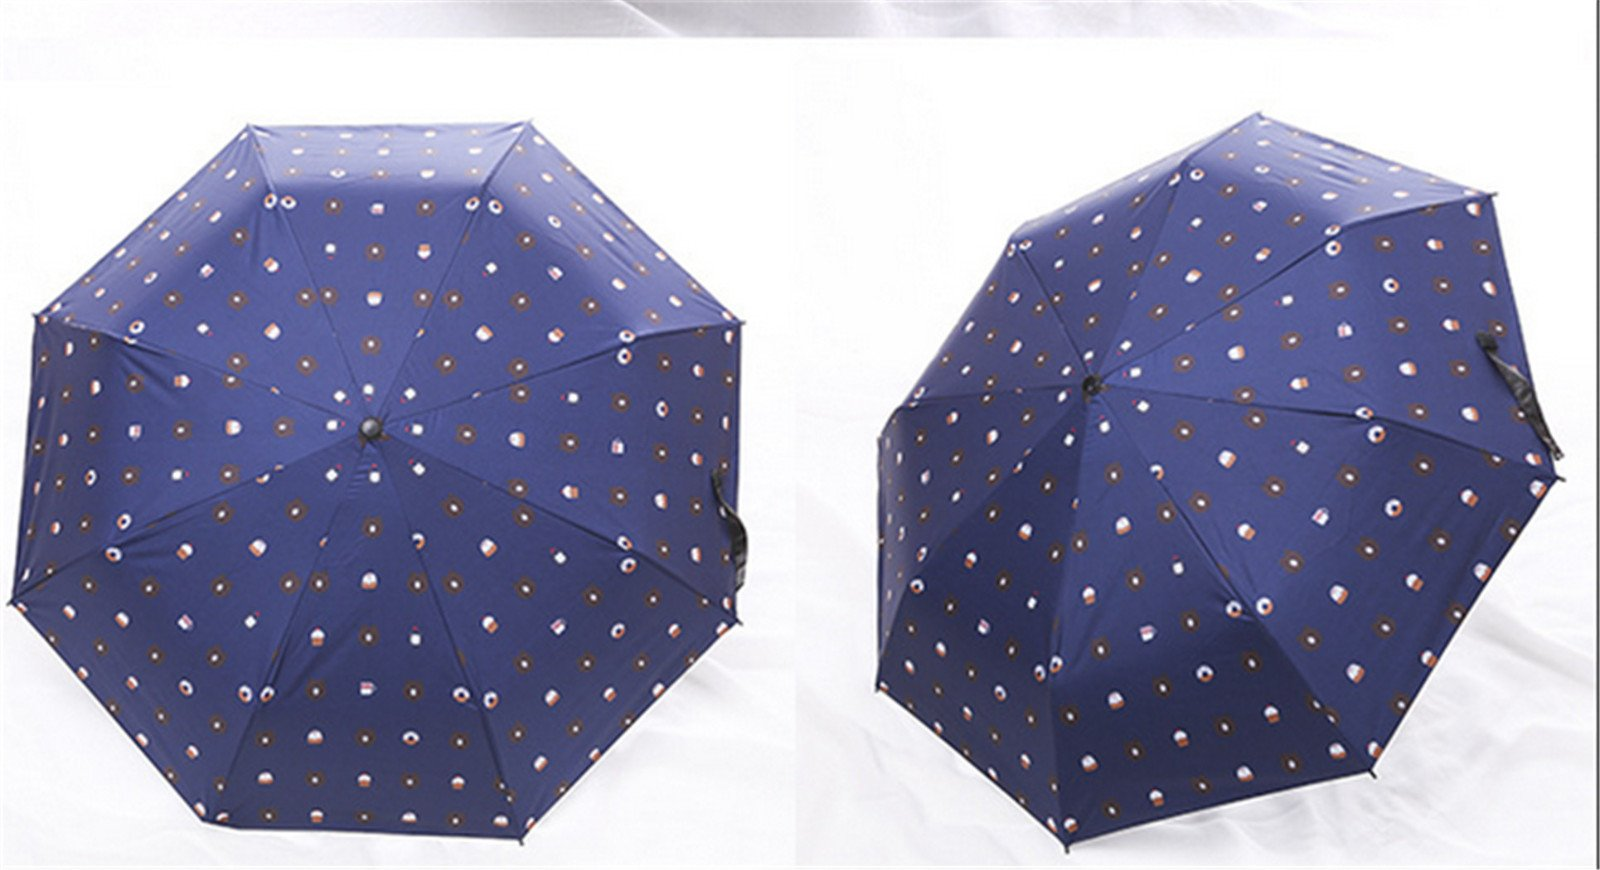 GKRY Fashion Art Umbrella/Windproof Travel Umbrellas/Folding Umbrella/for Business and Travels/SPF 352+ SUN RAIN Umbrella/RAIN Umbrella The ultra fine umbrella blue sky. by GKRY Home (Image #3)